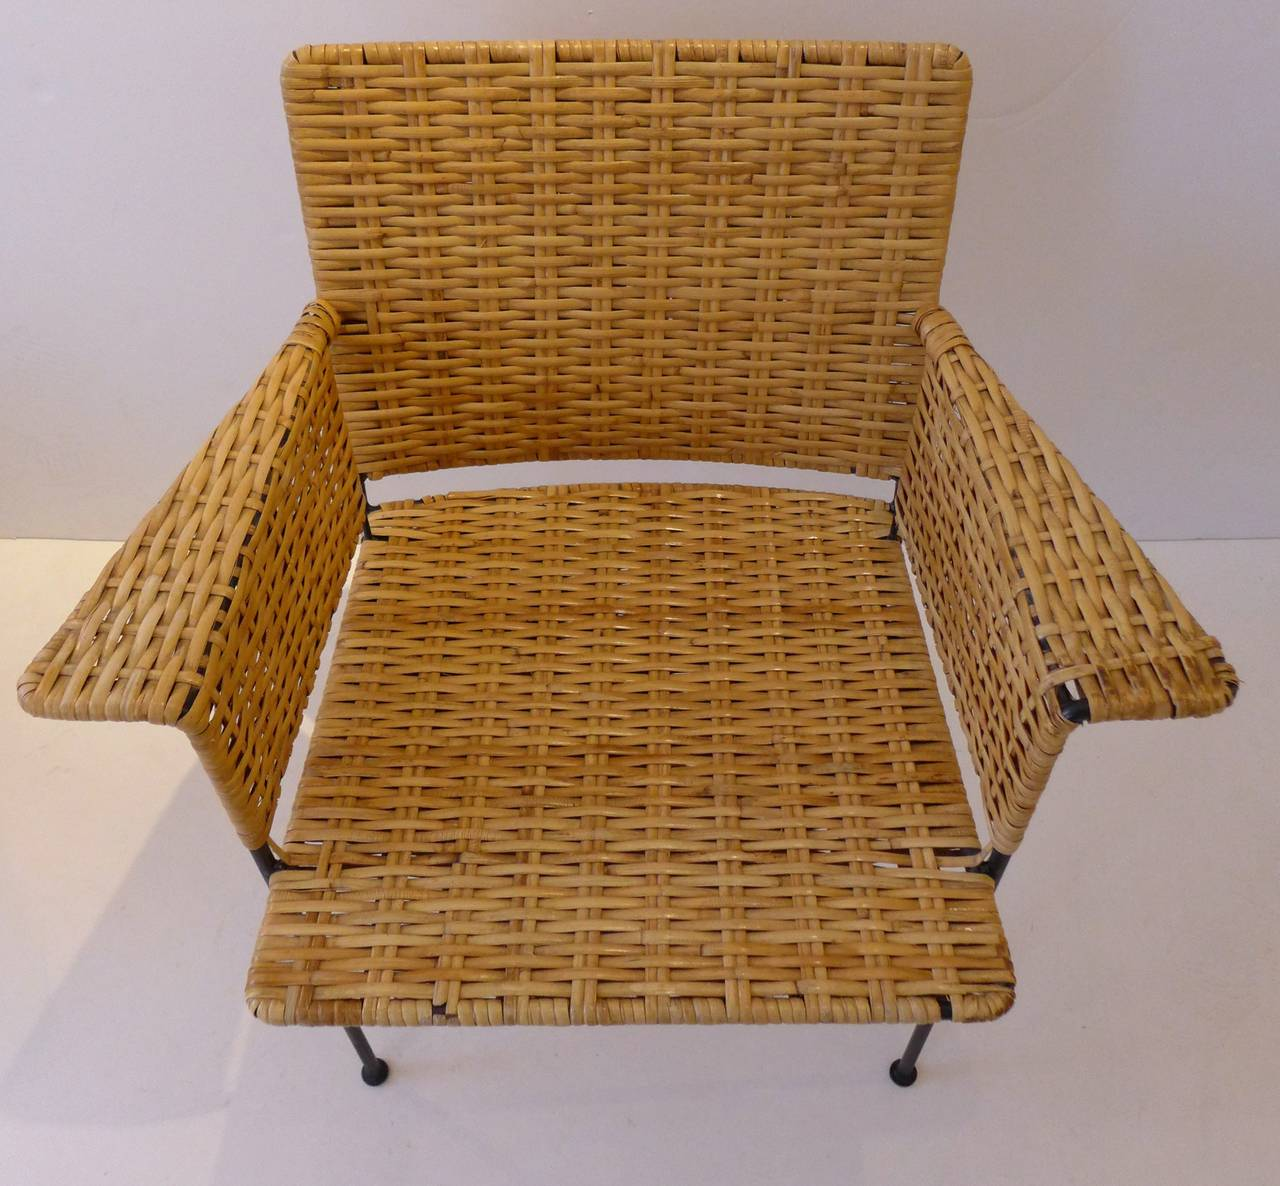 American Mid Century Modern Atomic Age Small Patio Round: Van Keppel-Green Chair In Wrought Iron And Rattan At 1stdibs